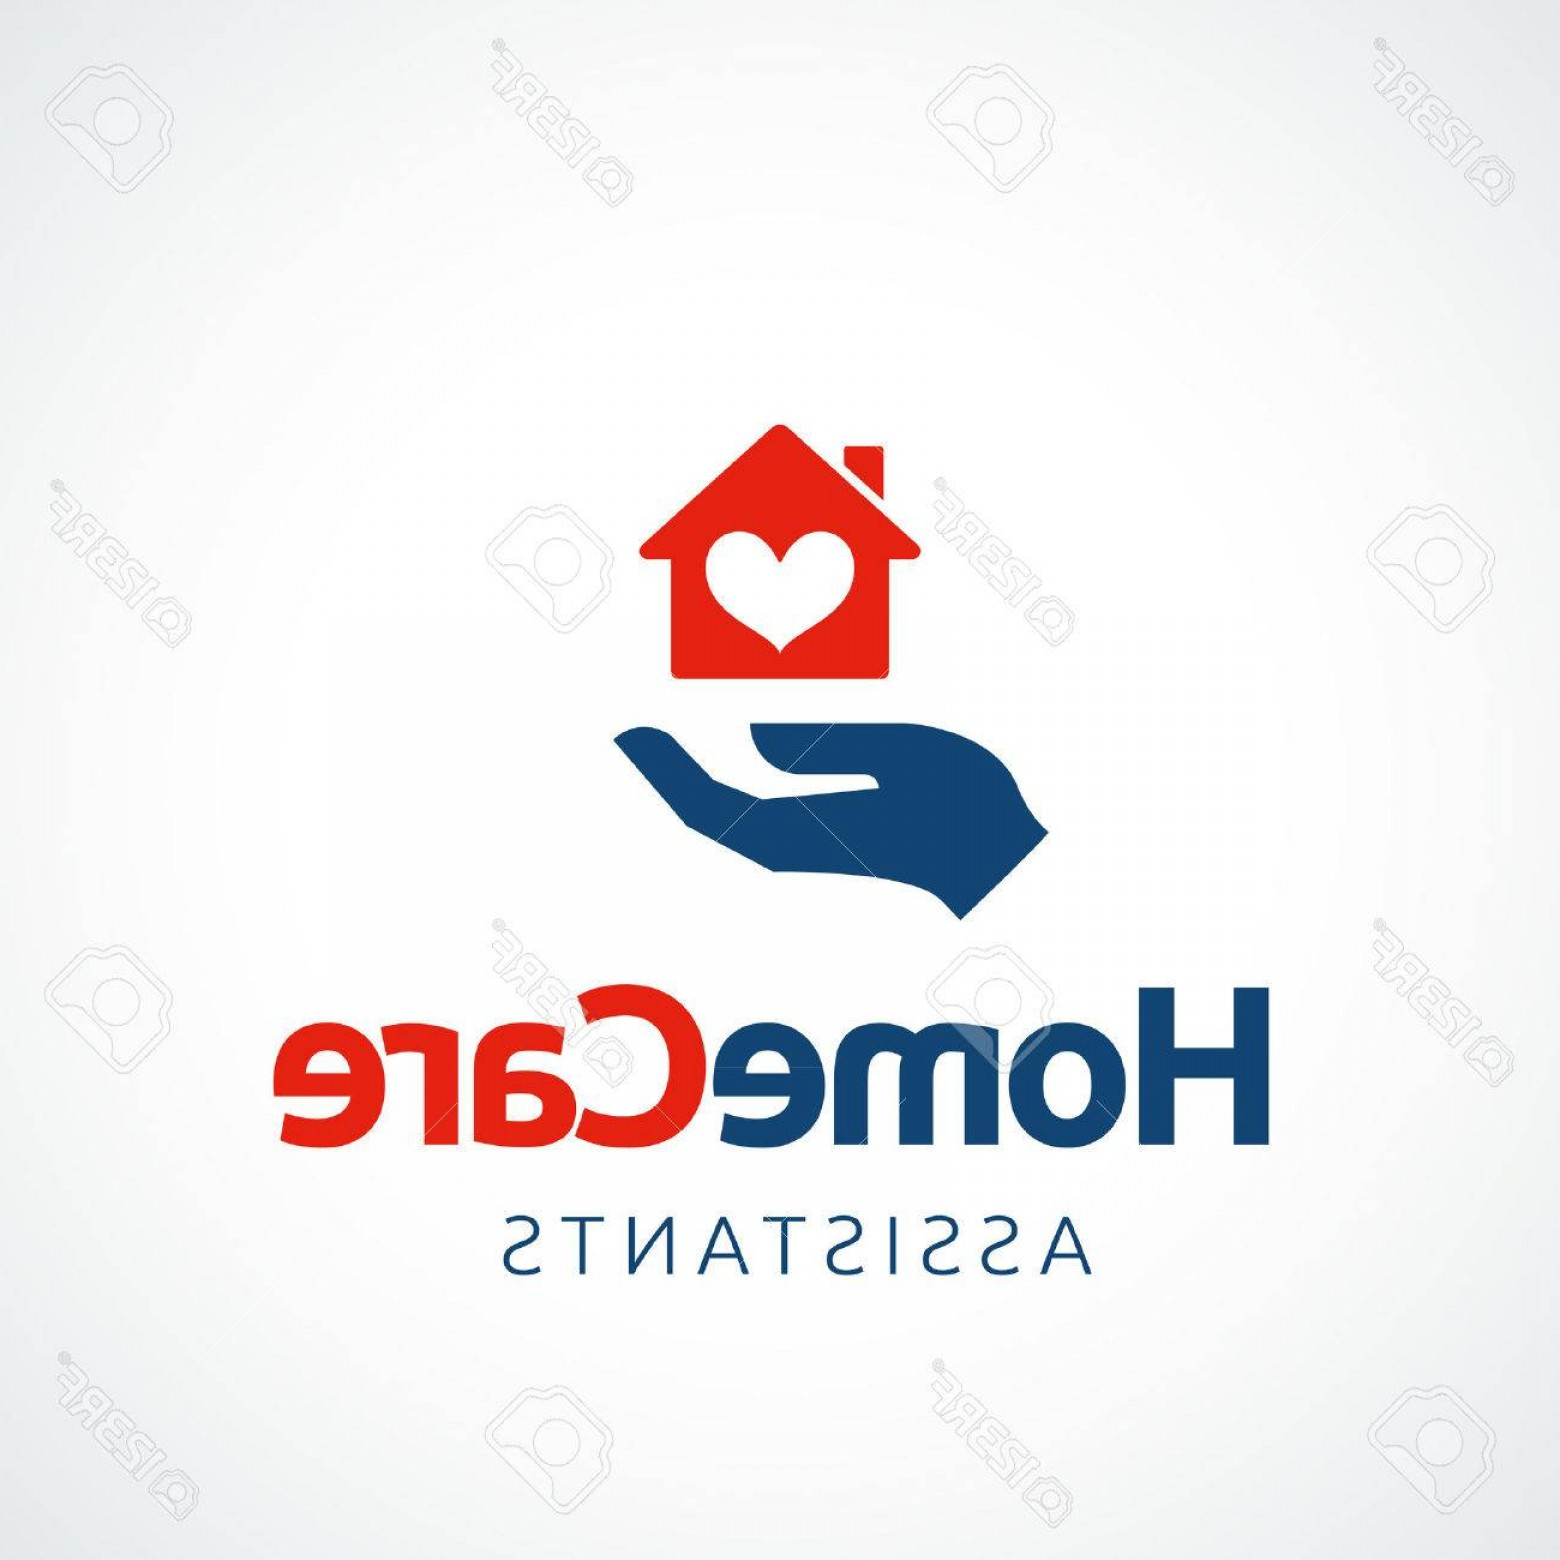 Equal Housing Vector: Photostock Vector Hand Holding A House Symbol With Heart Shape Vector Icon Eps File